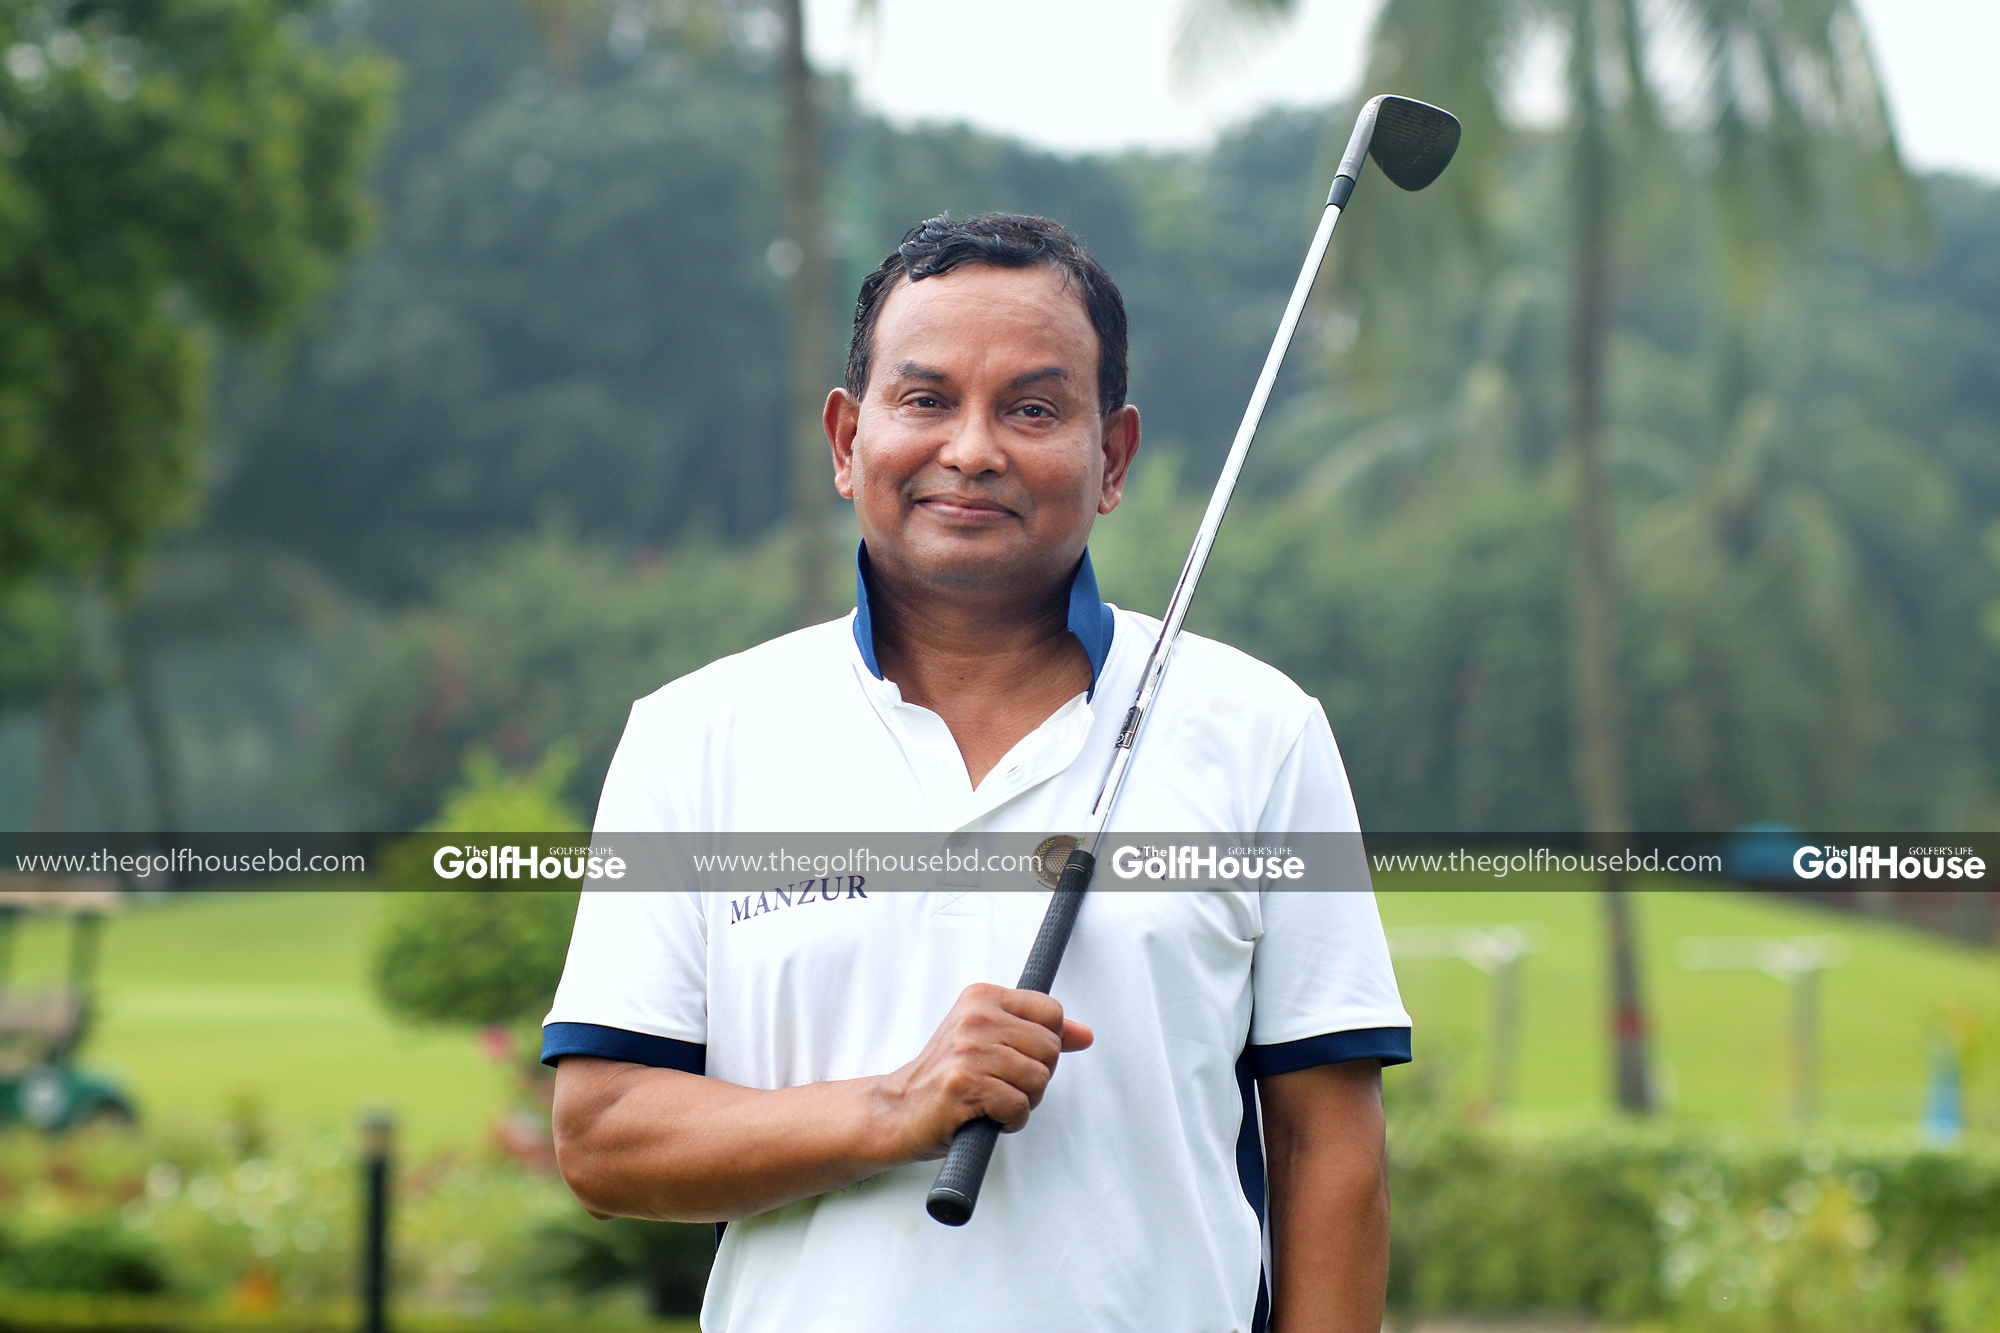 Manzur_Qader_is_the_current_vice_president_of_the_Tiger_Golf_Club_The_club_set_up_eight_years_ago_works_to_make_a_bond_between_local_golfers_and_foreign_expats_and_diplomats.